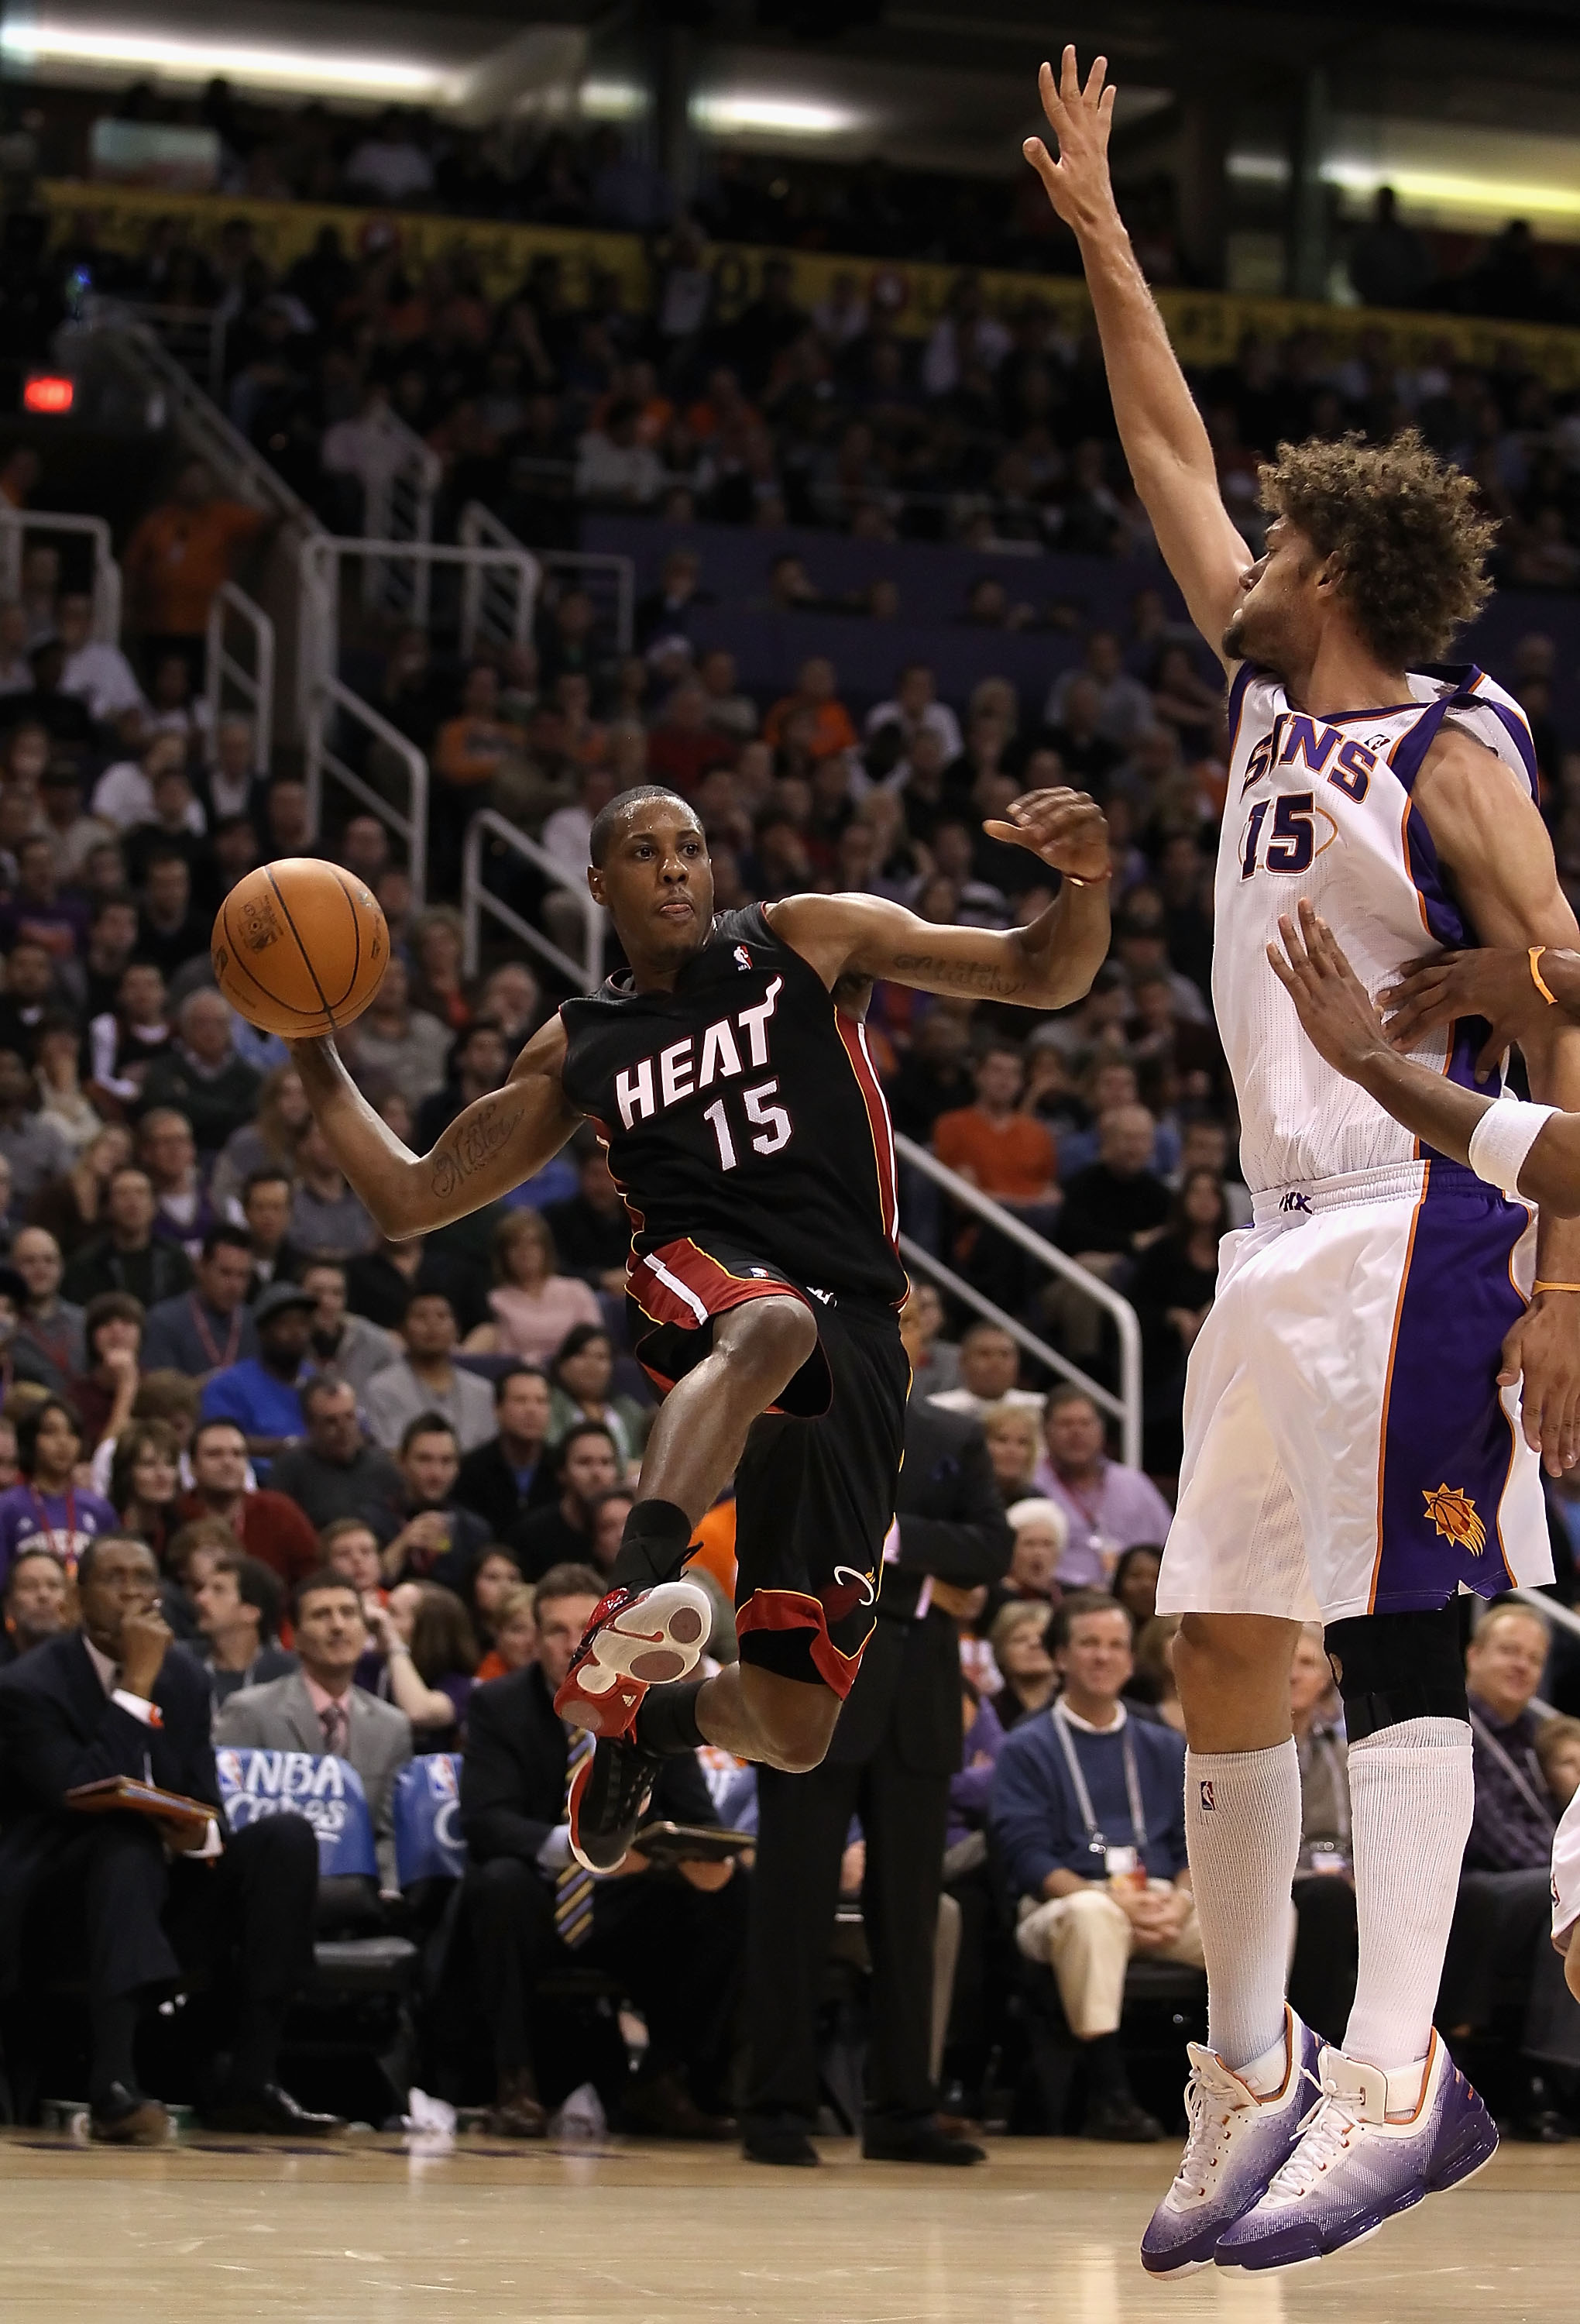 PHOENIX - DECEMBER 23:  Mario Chalmers #15 of the Miami Heat passes the ball around Robin Lopez #15 of the Phoenix Suns during the NBA game at US Airways Center on December 23, 2010 in Phoenix, Arizona. The Heat defeated the Suns 95-83.  NOTE TO USER: Use